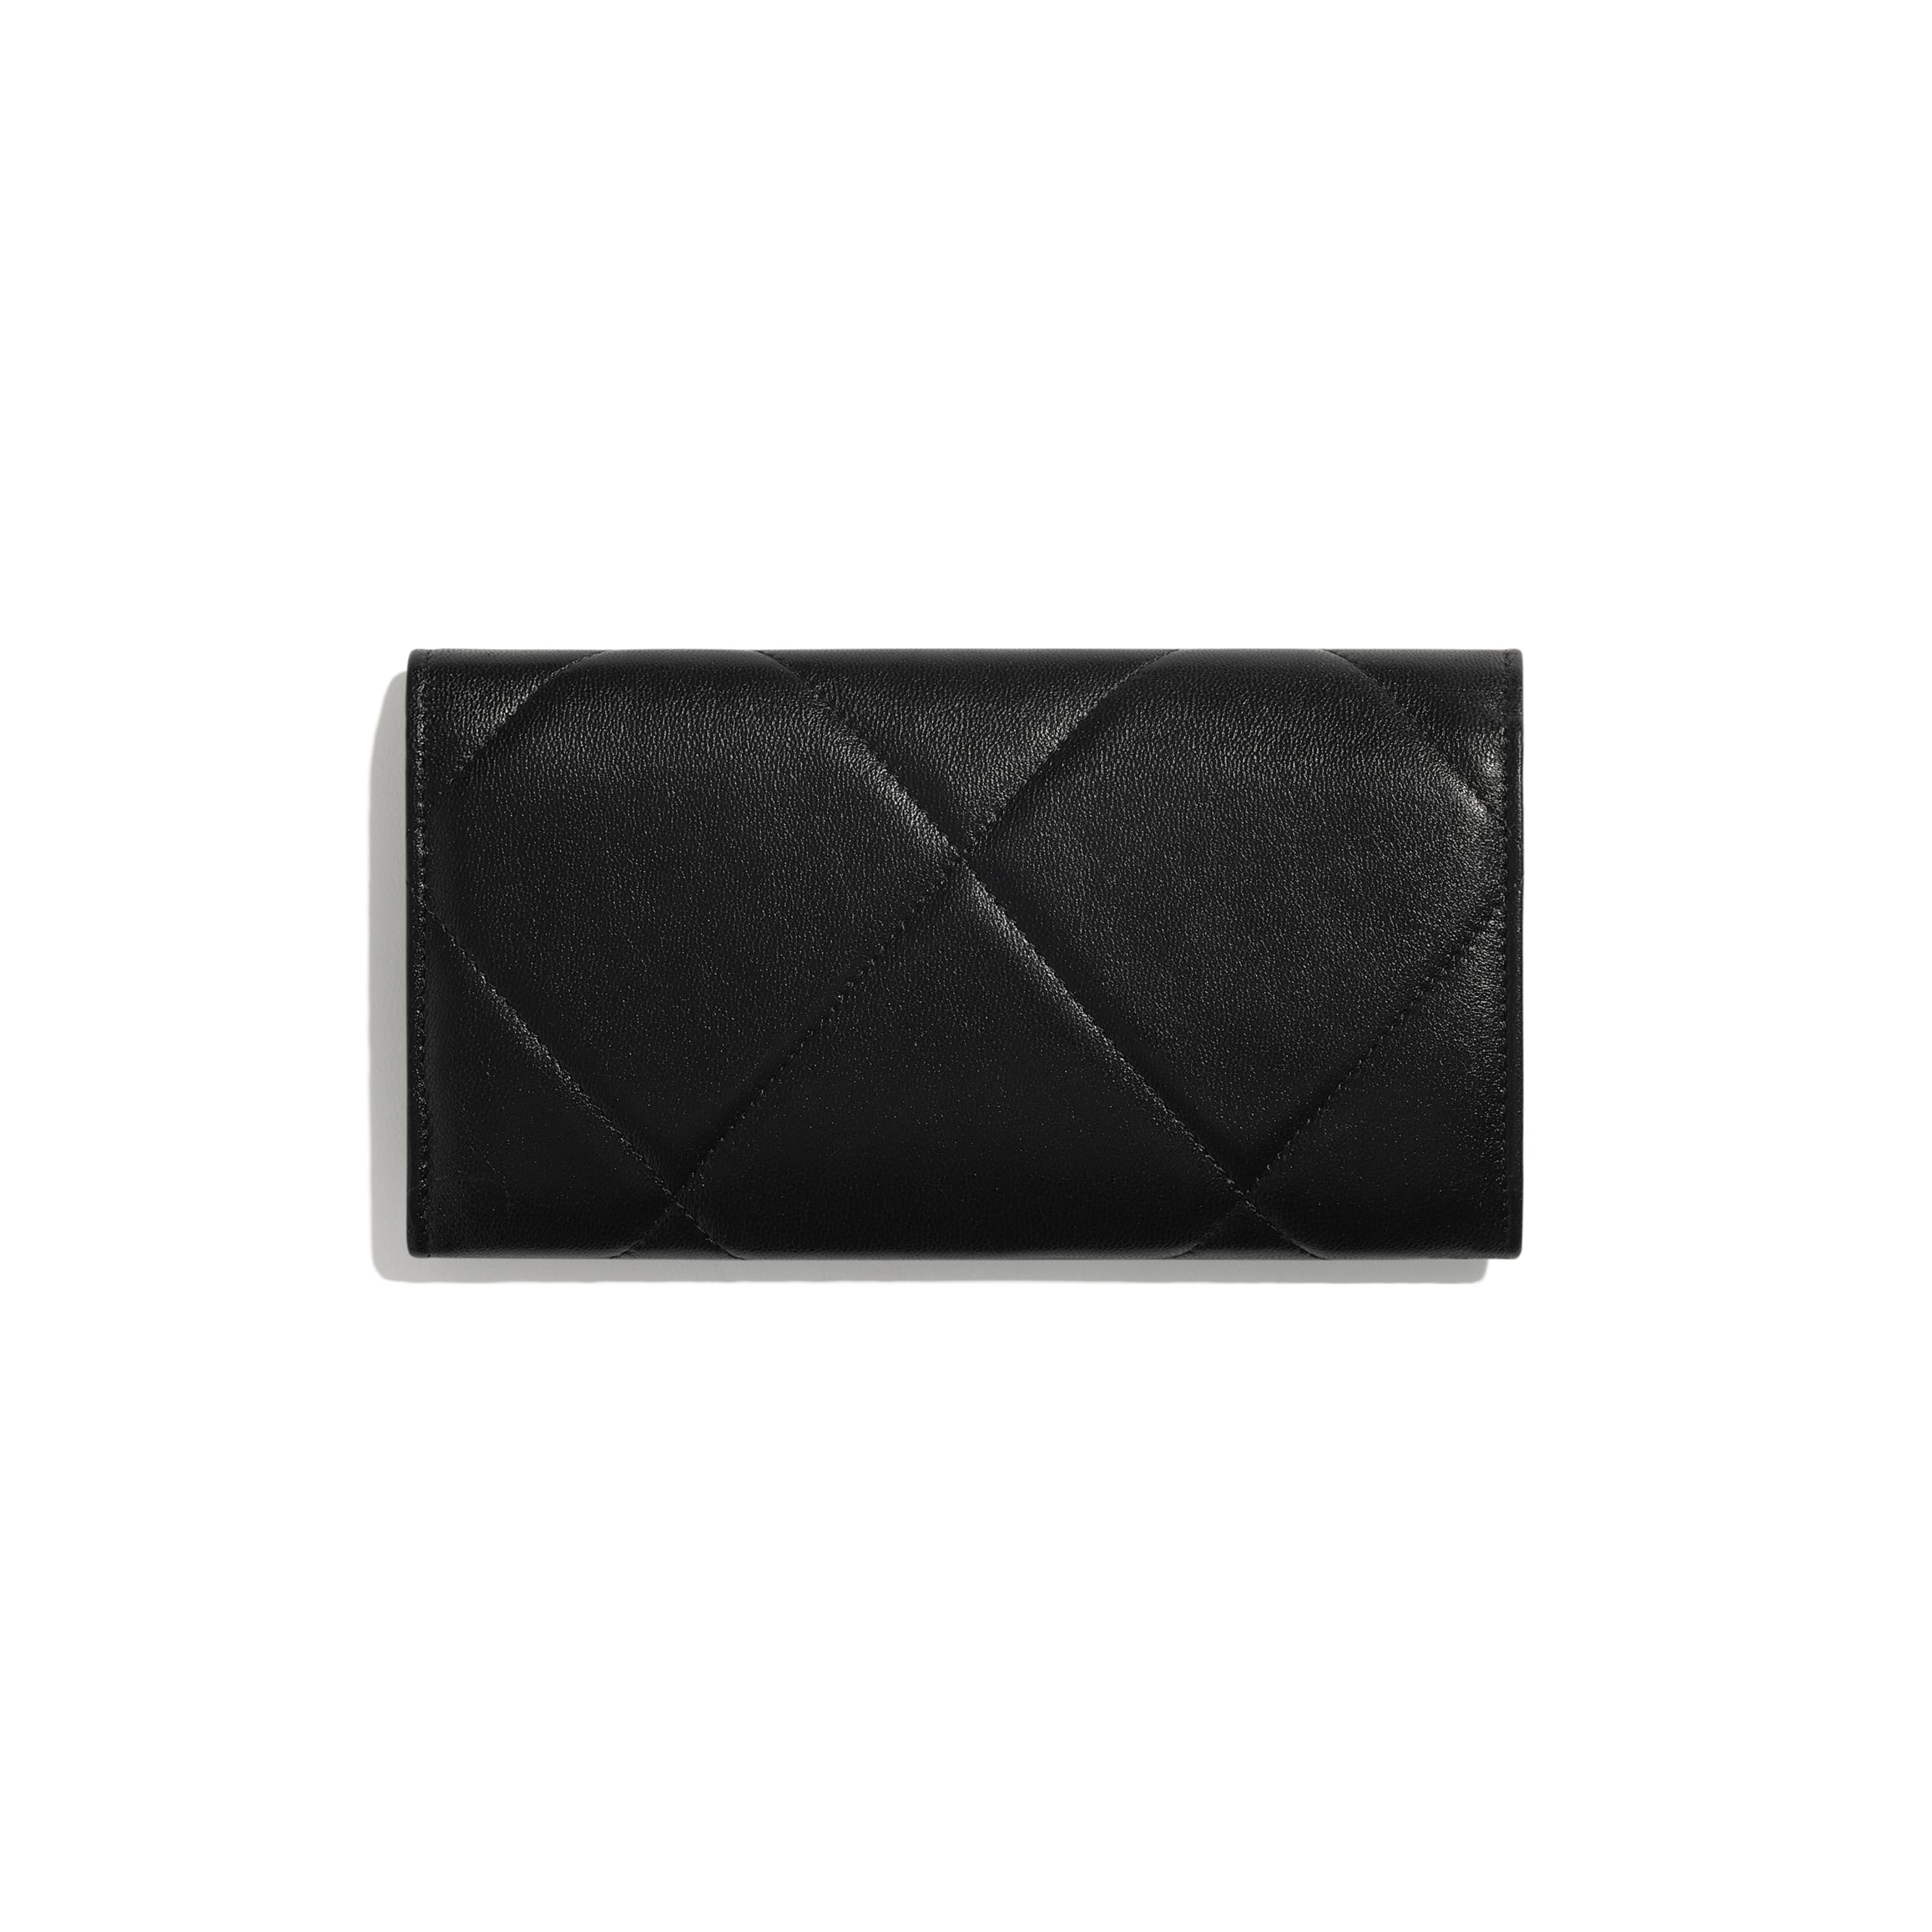 CHANEL 19 Long Flap Wallet - Black - Lambskin, Gold-Tone, Silver-Tone & Ruthenium-Finish Metal - CHANEL - Alternative view - see standard sized version